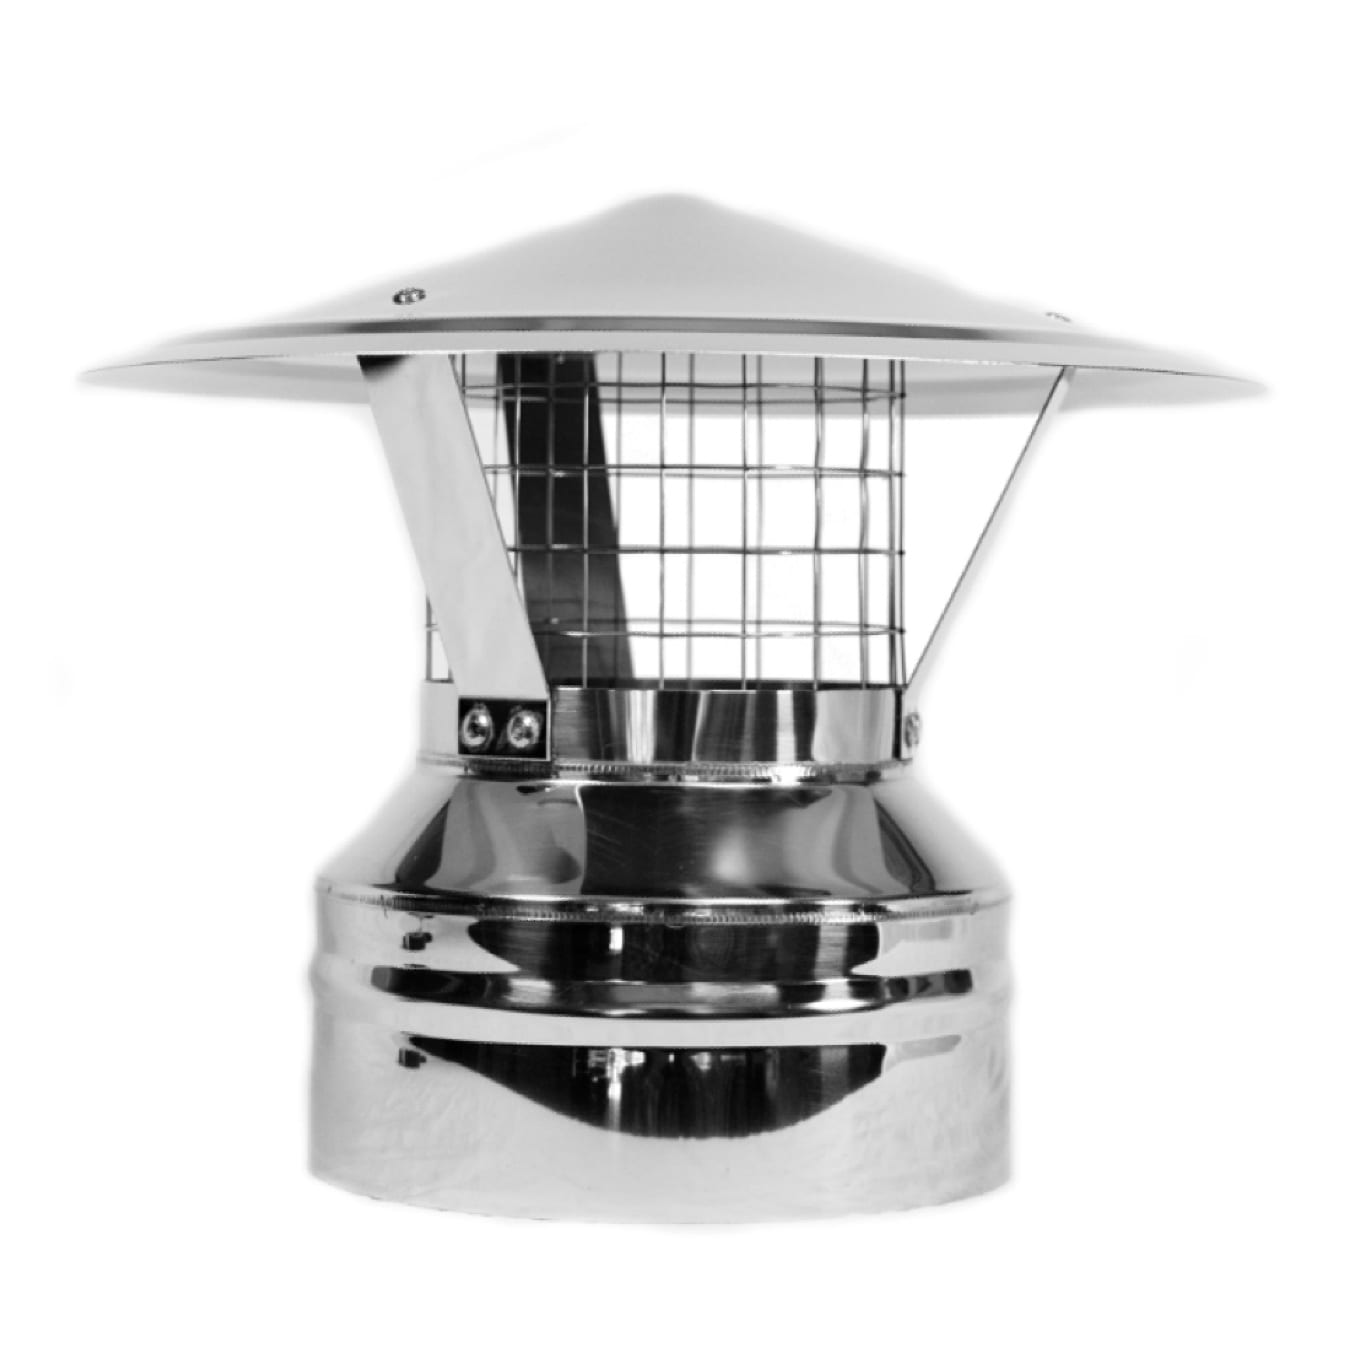 5 Stainless Steel Roof Vent Tiny Wood Stove